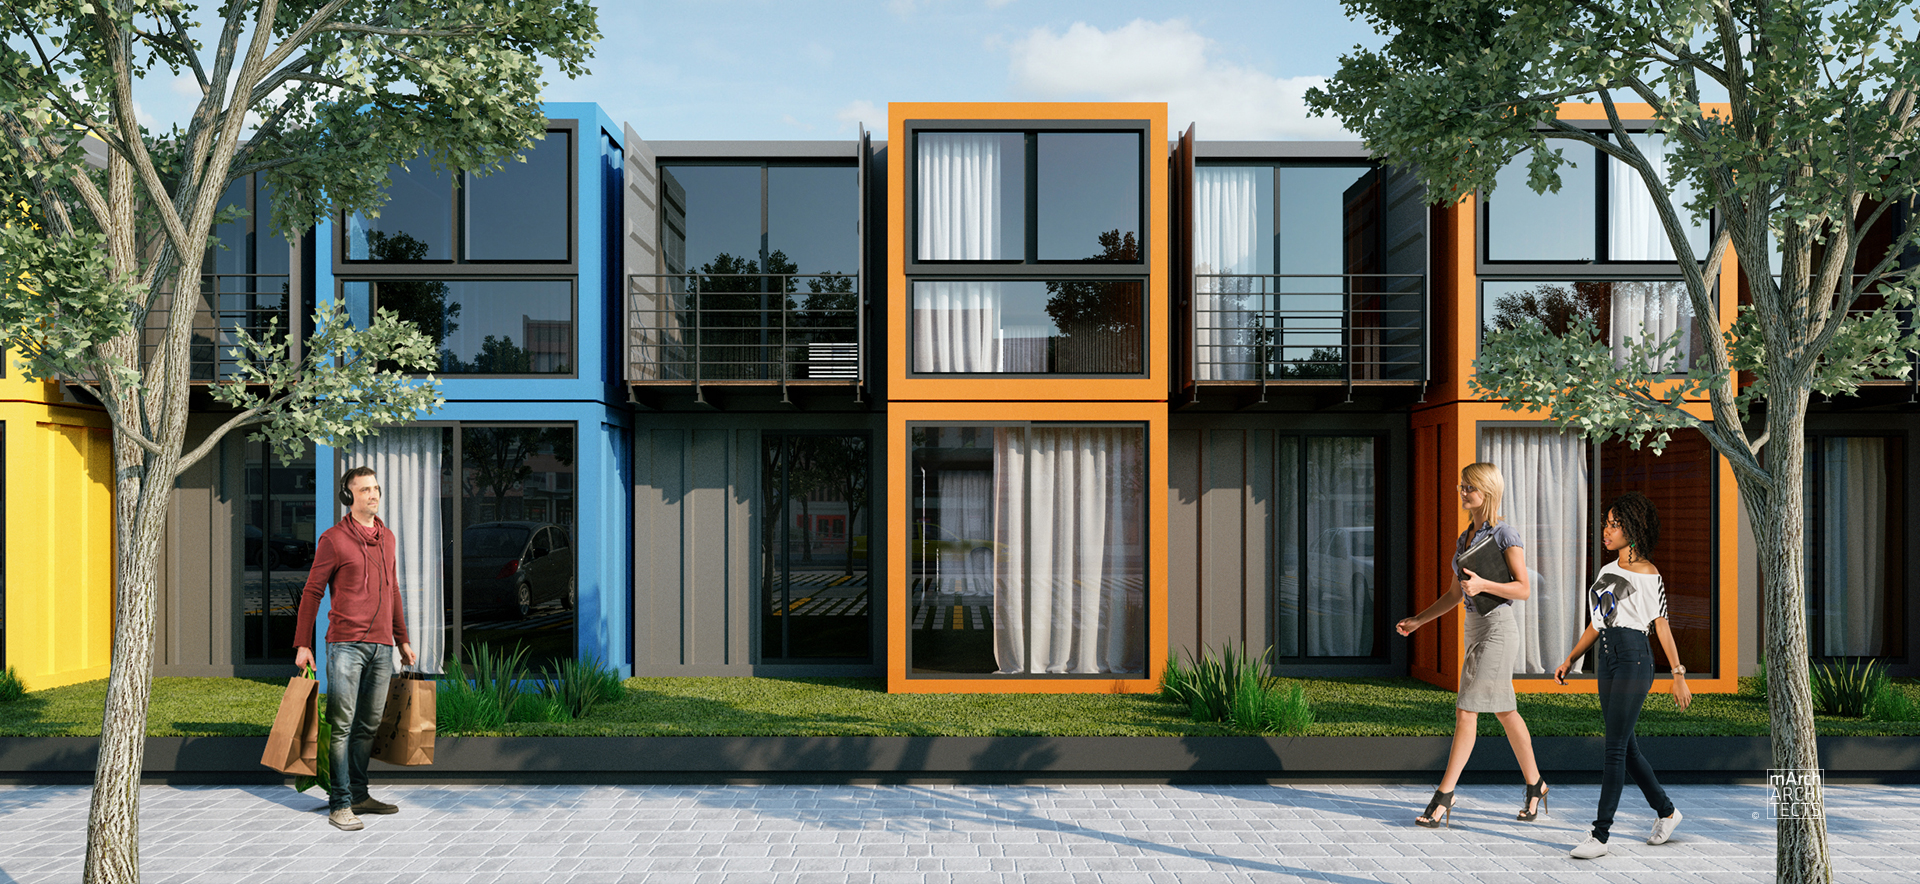 04 | Container House